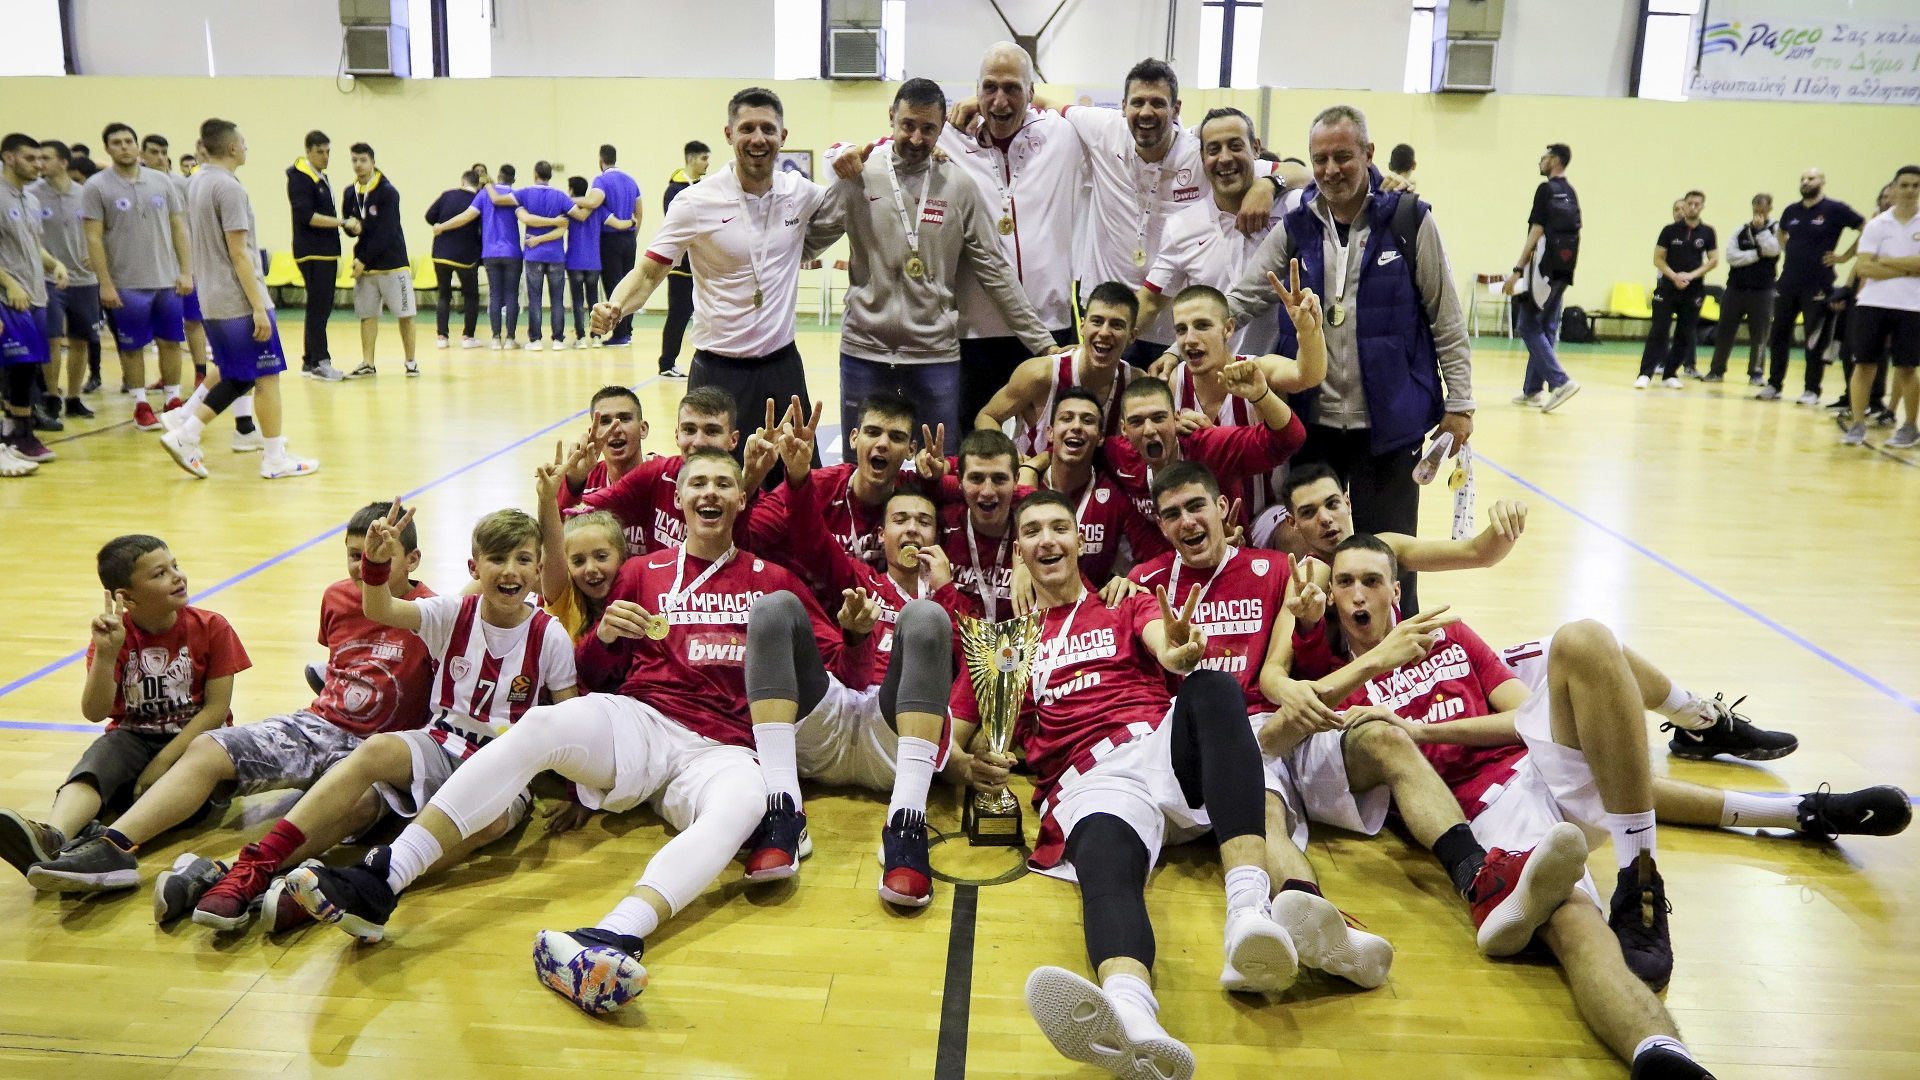 Back to back Greek Championship for the Olympiacos' Juniors!